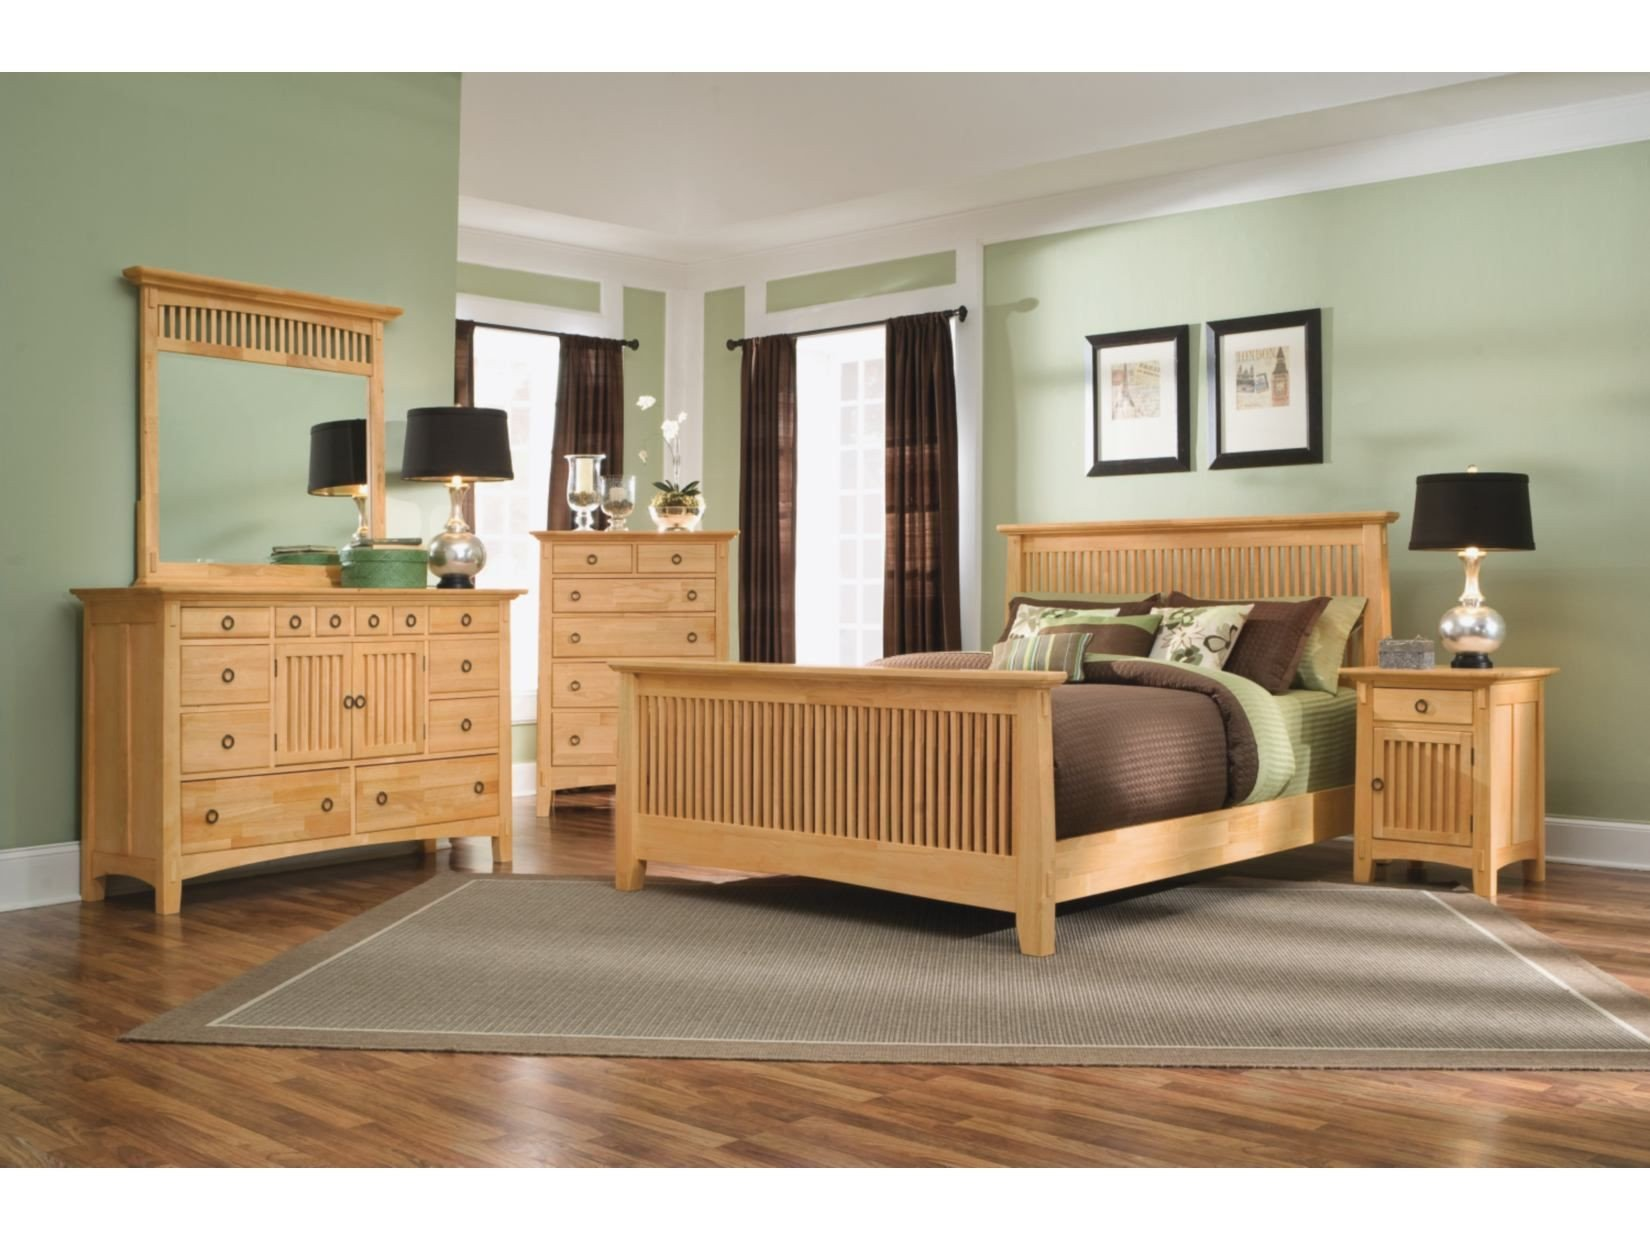 Wall Unit Bedroom Set Beautiful Arts & Crafts 5 Pc Bedroom Package American Signature